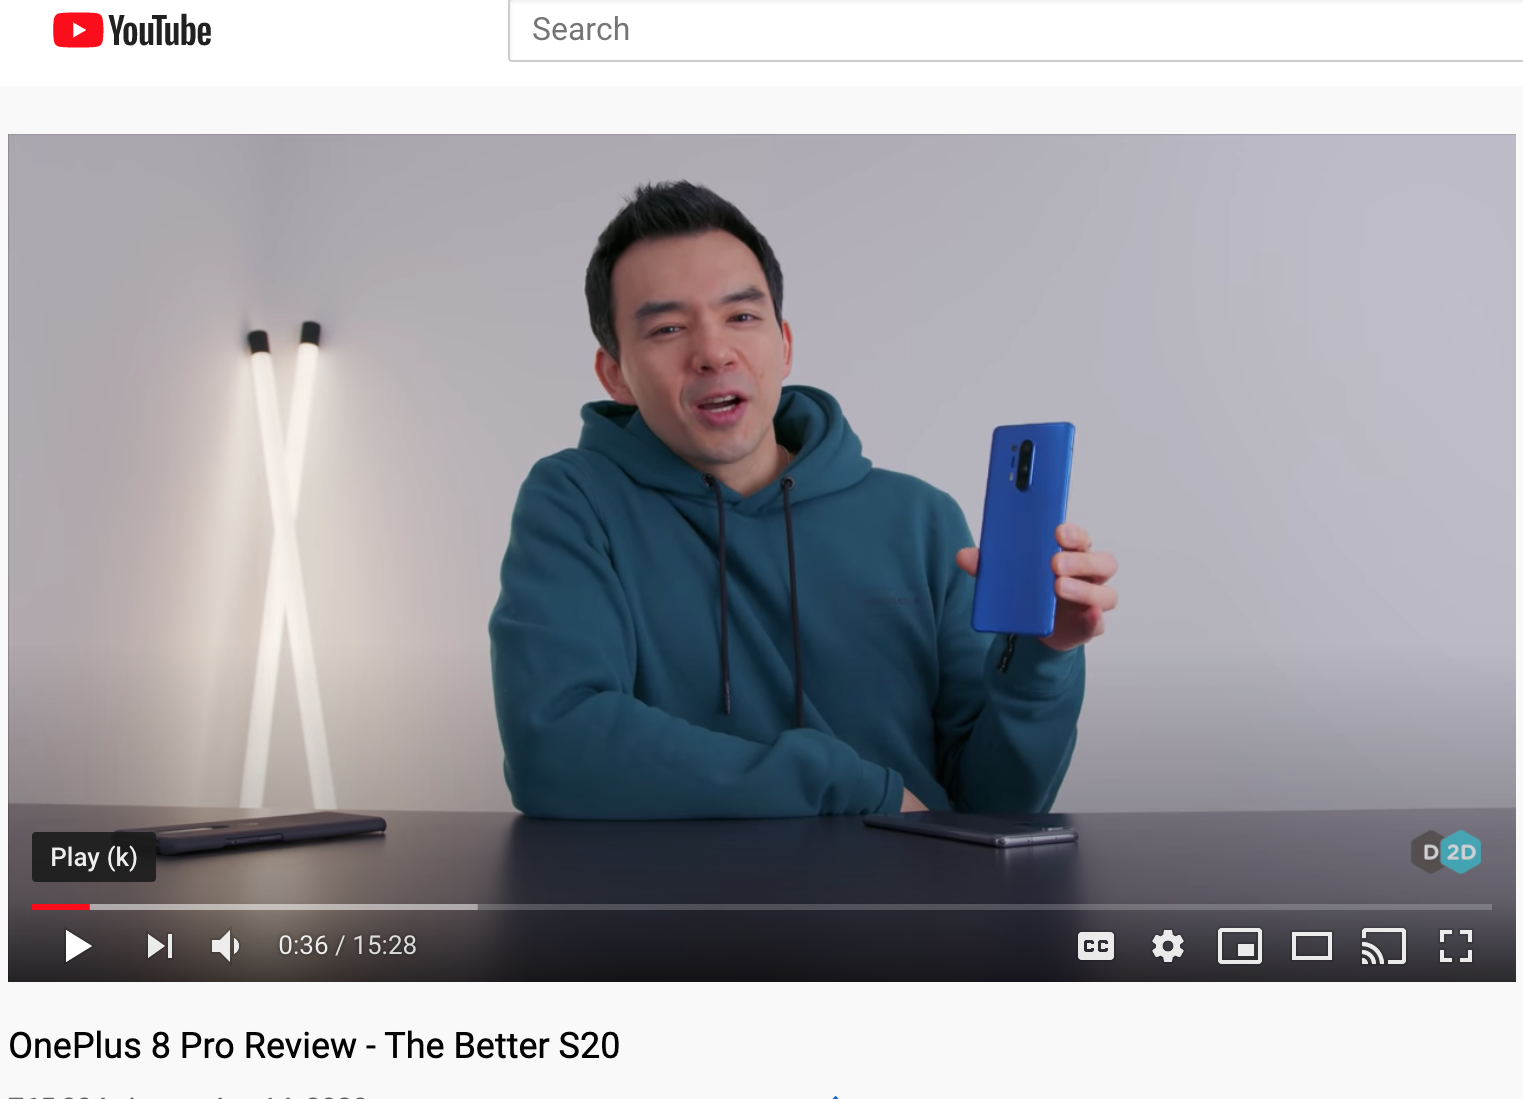 OnePlus 8 Pro Review by Dave Lee (Dave2D)